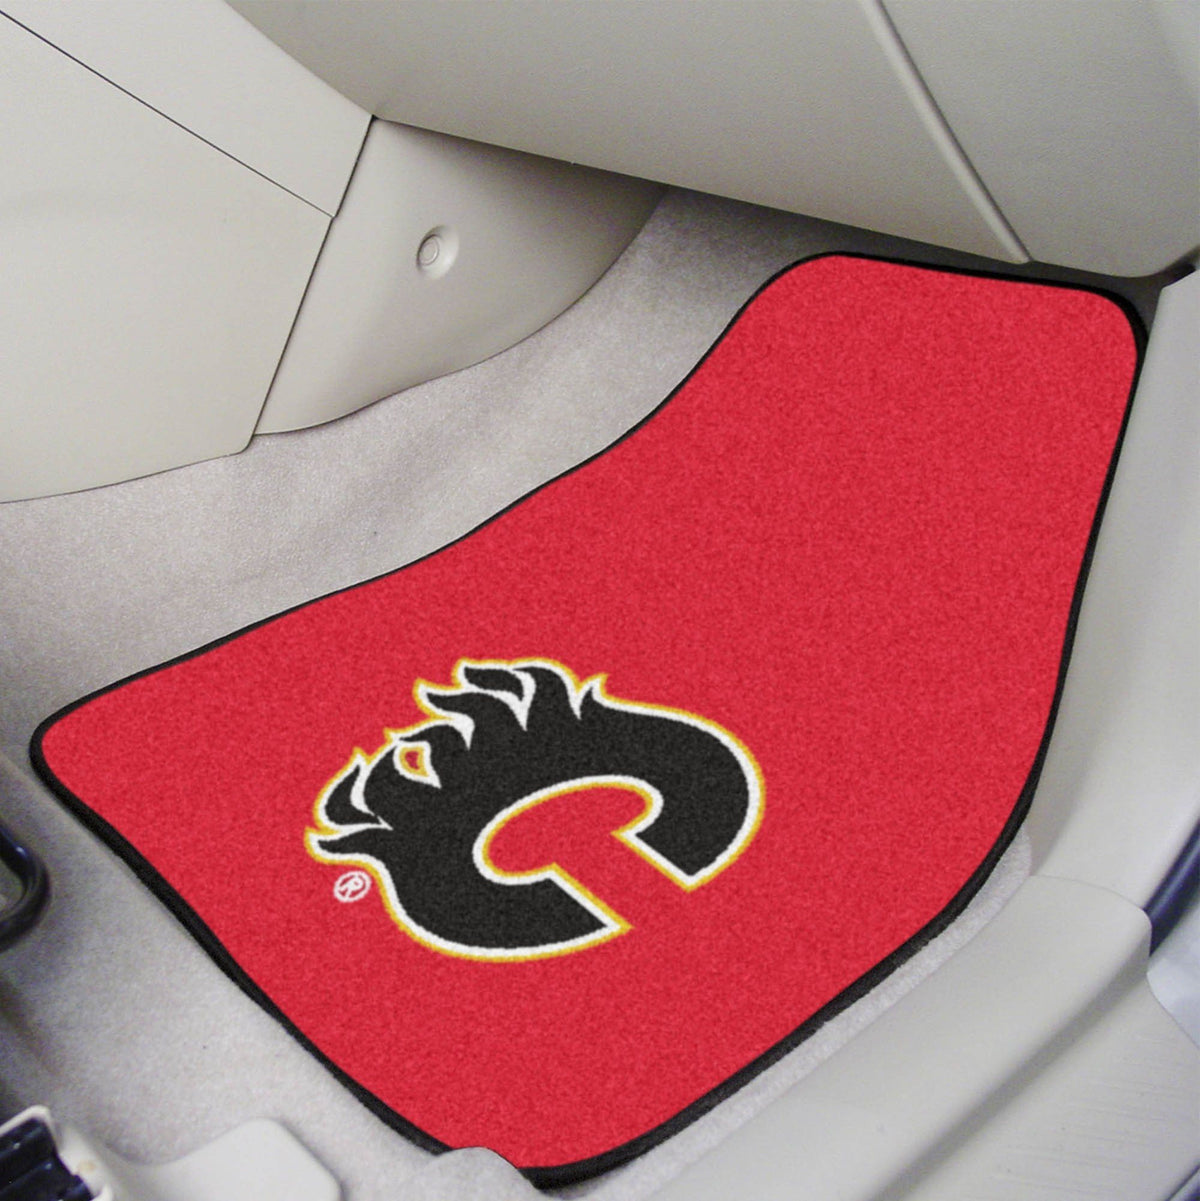 NHL - Carpet Car Mat, 2-Piece Set NHL Mats, Front Car Mats, 2-pc Carpet Car Mat Set, NHL, Auto Fan Mats Calgary Flames